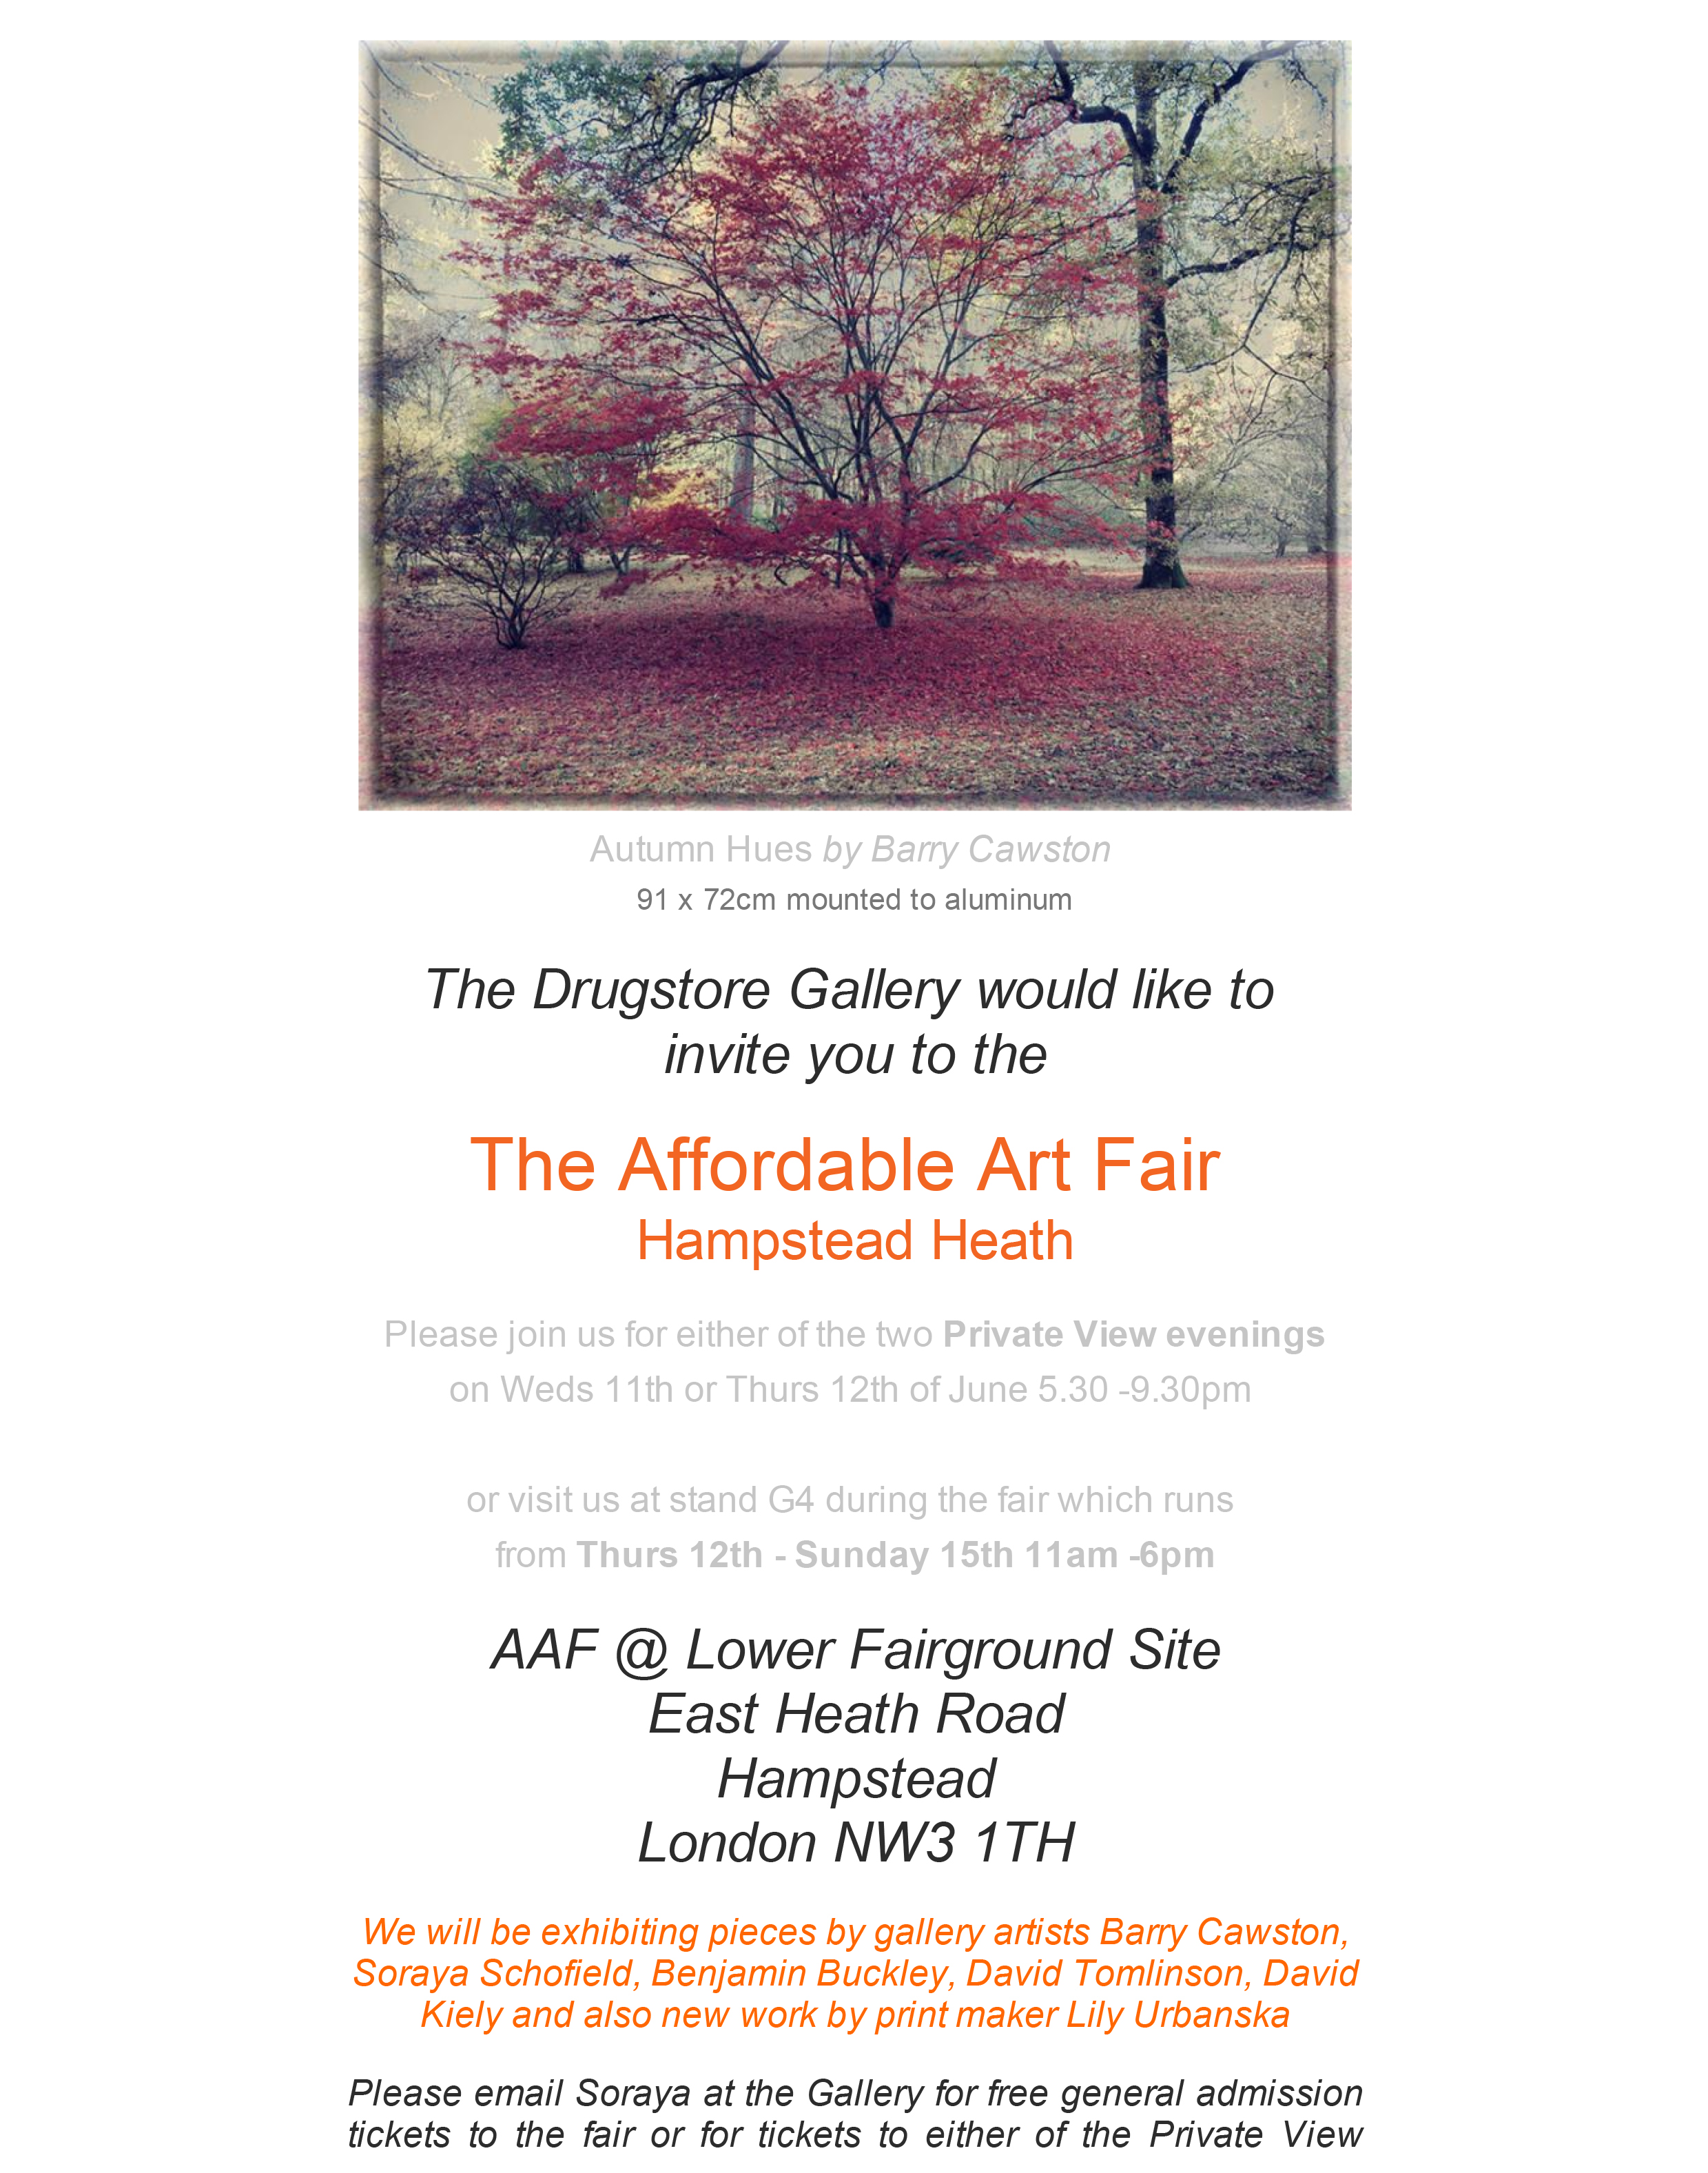 AAF Hampstead invite